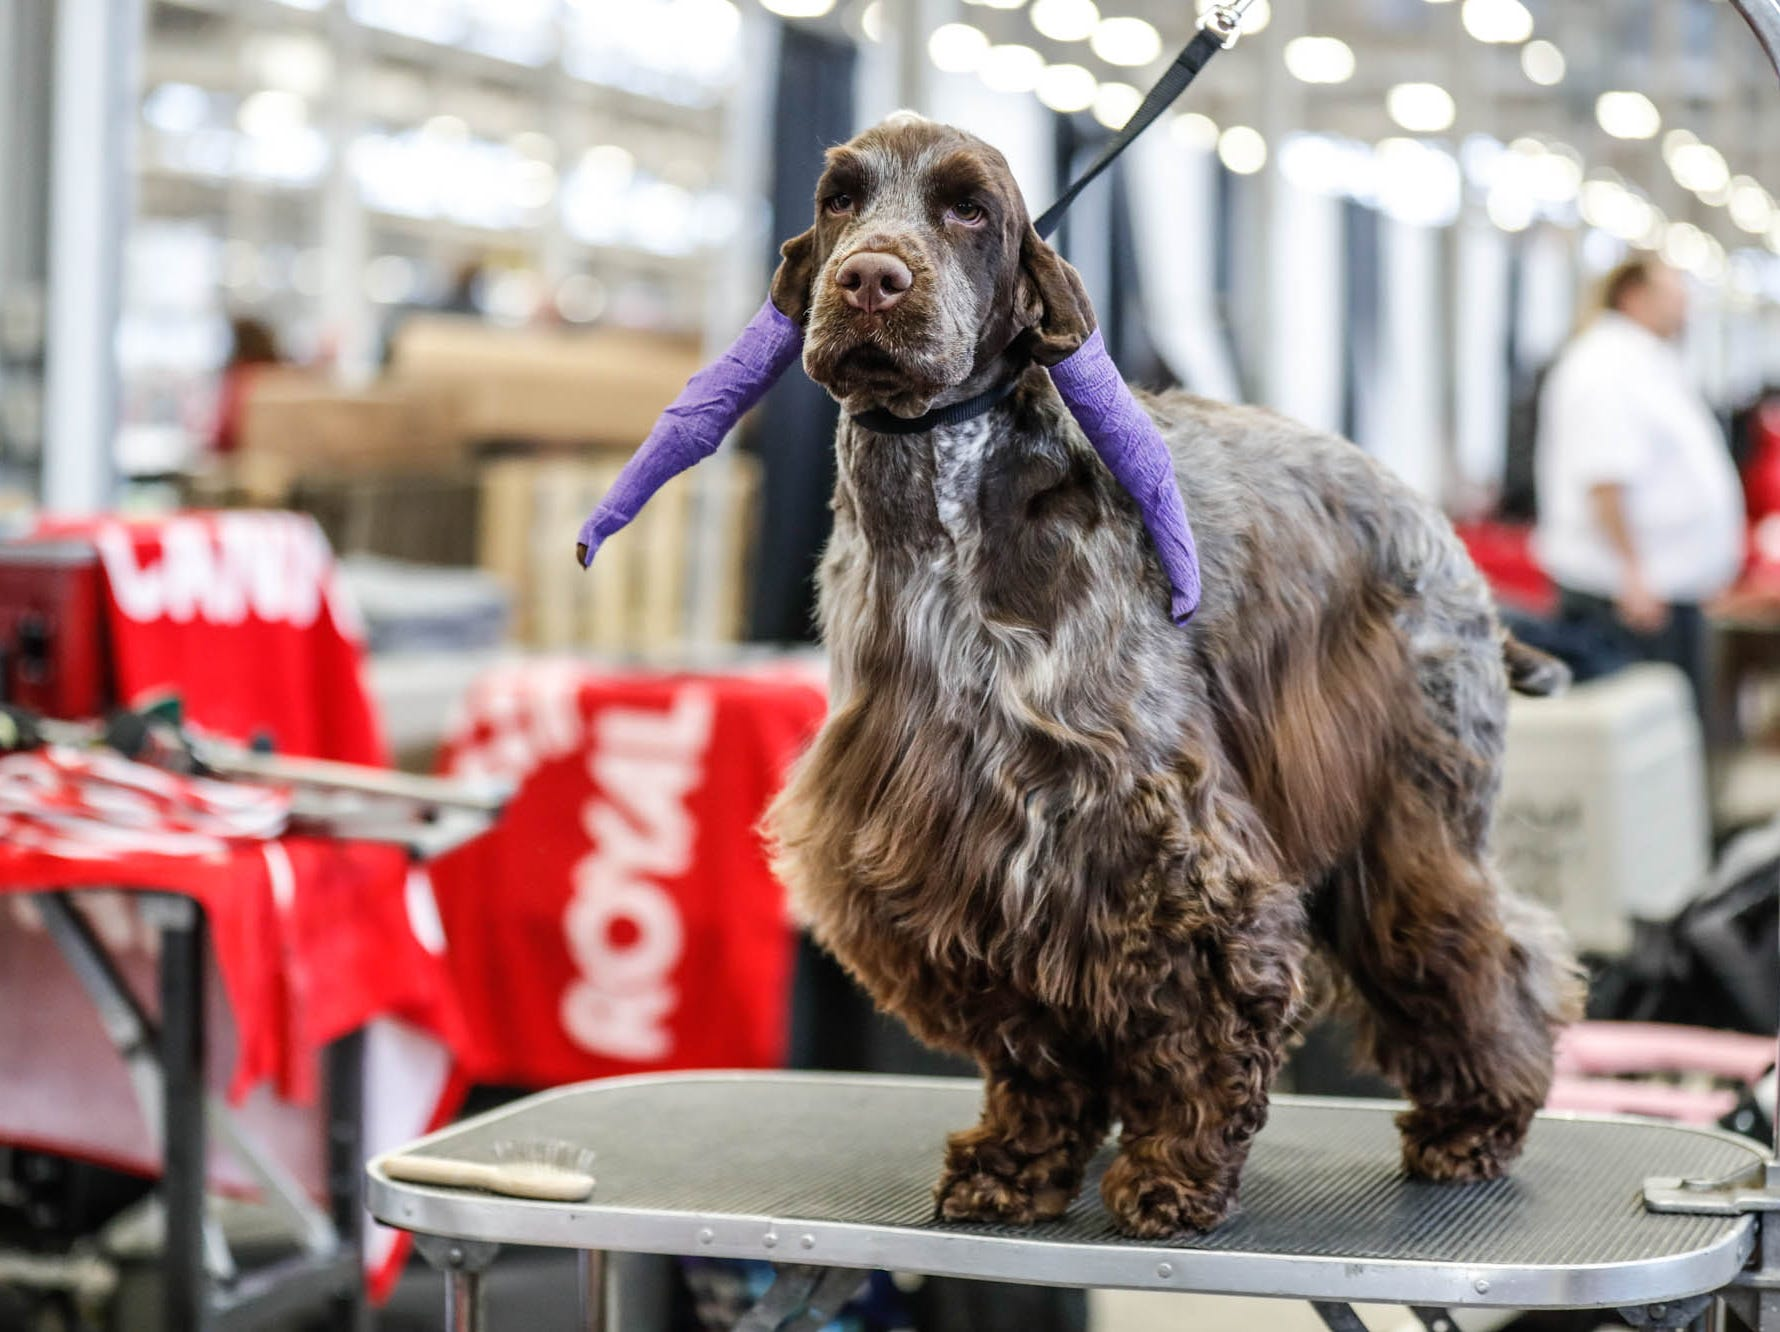 The ears of Badger, an English cocker spaniel, are wrapped during grooming for the Indy Winter Classic All Breed Dog Show held at the Indiana State Fairgrounds on Sunday, Feb. 10, 2019.